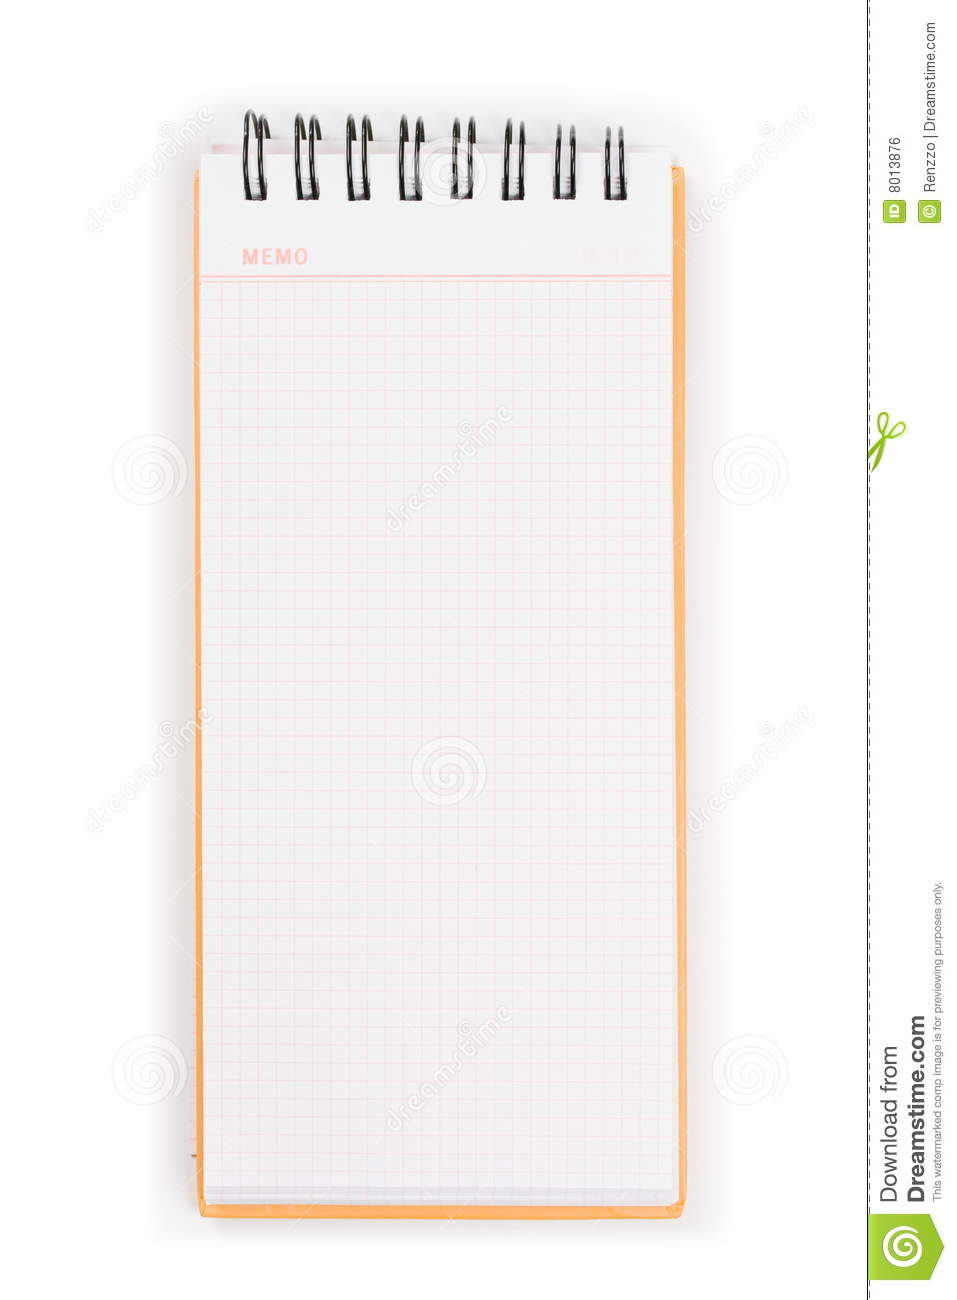 free memo padBlank Vertical Memo Pad With Orange Cover Royalty Free Stock Image XGlxI3TQ